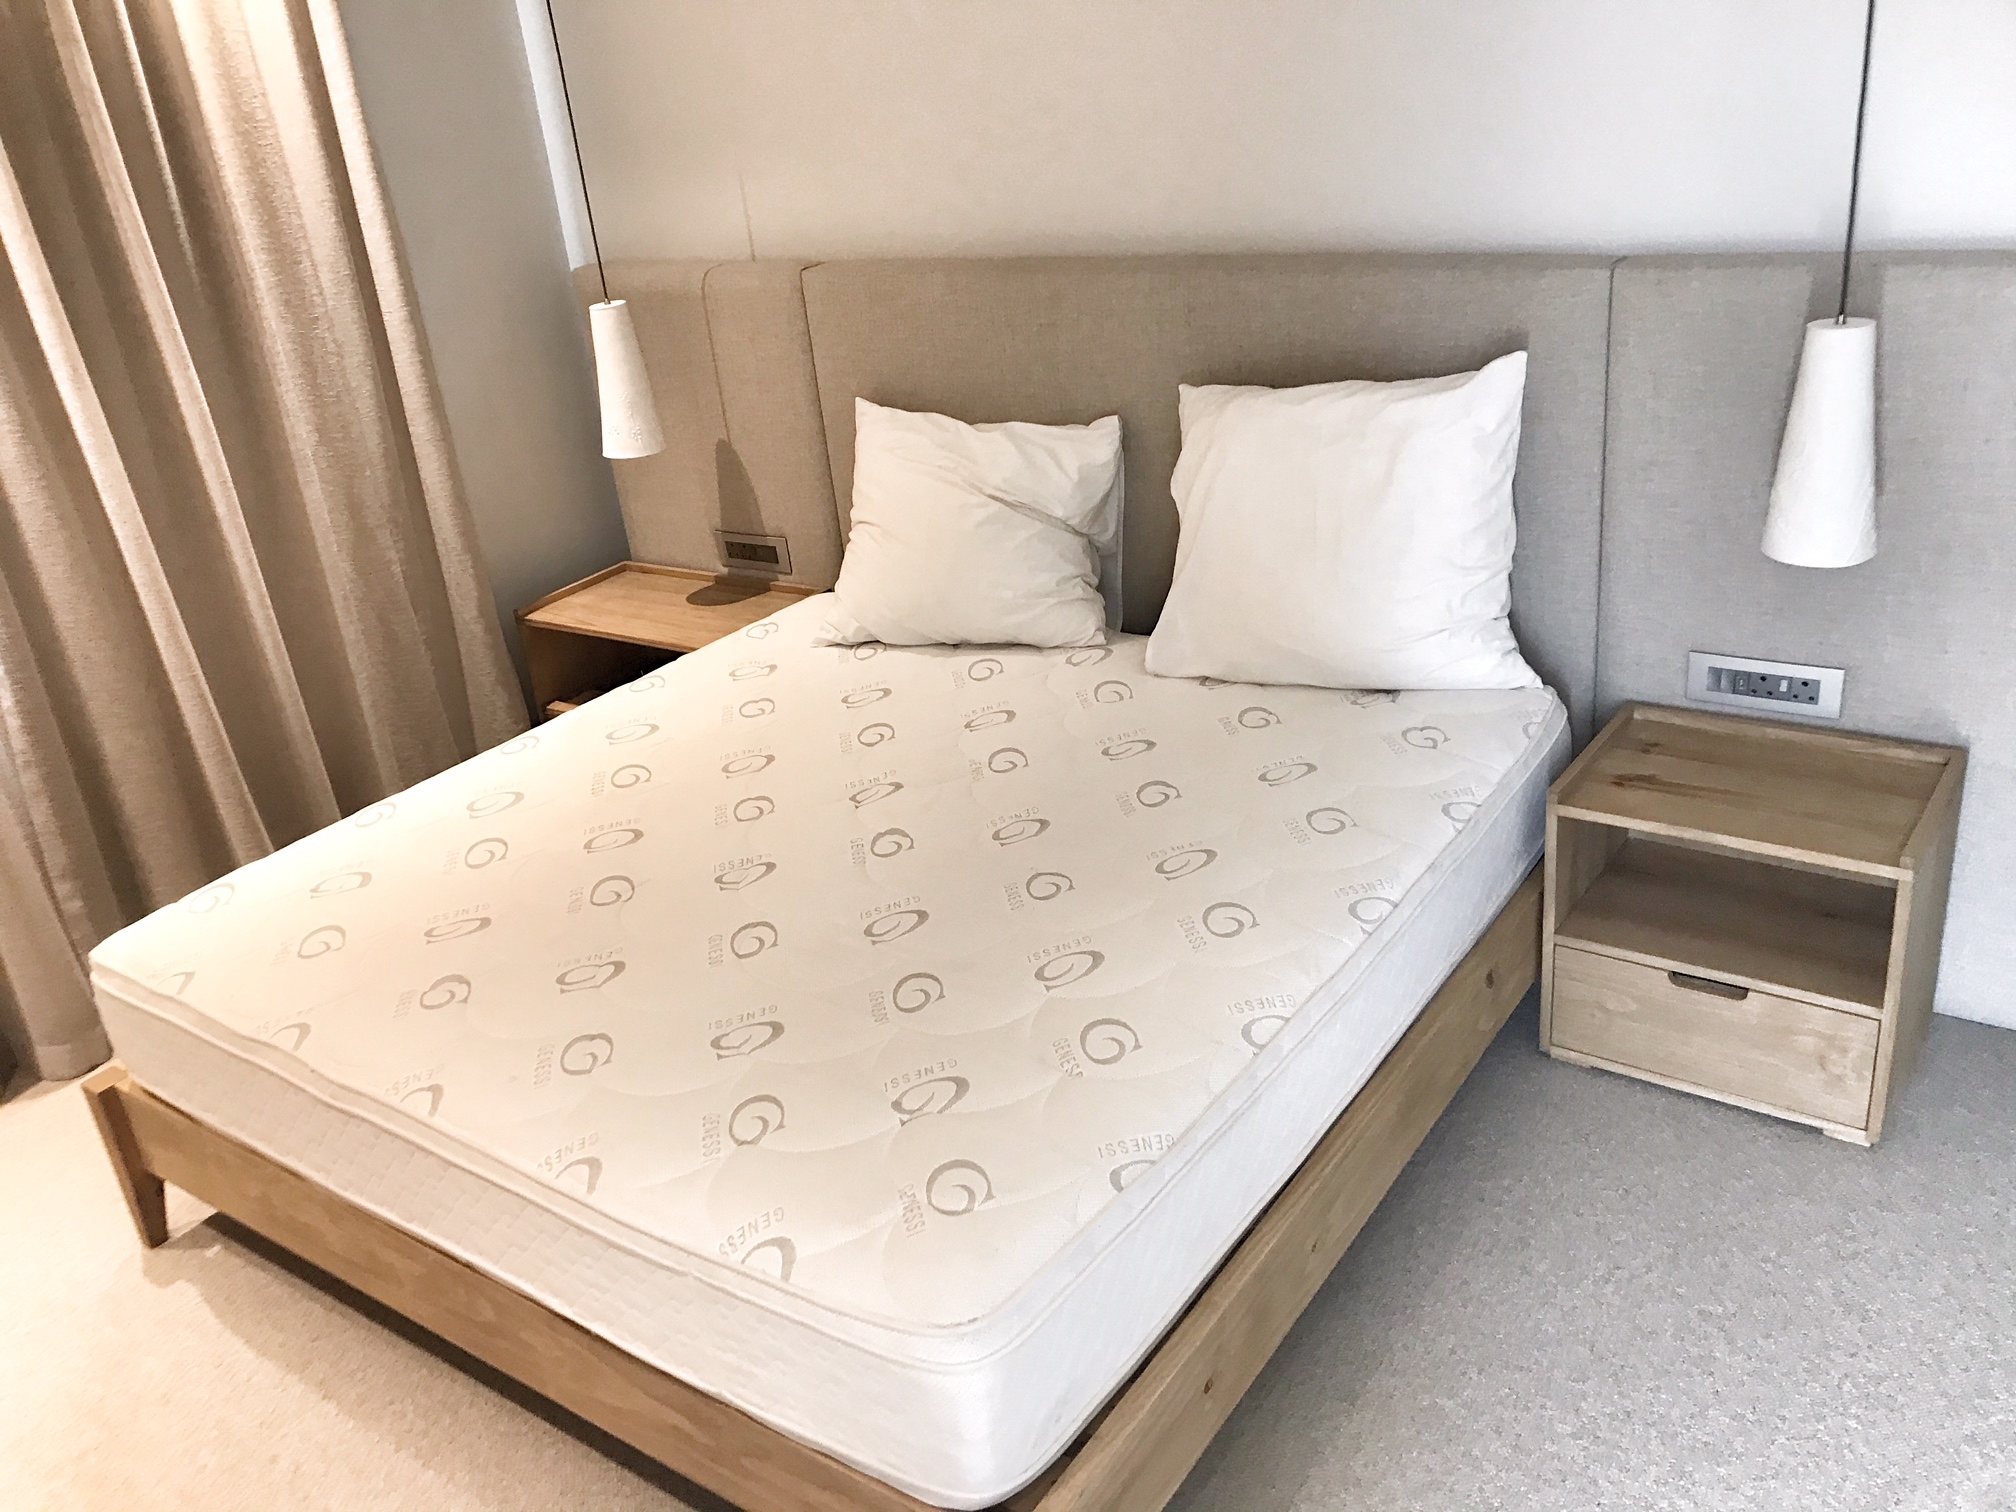 King size bed with bedside tables